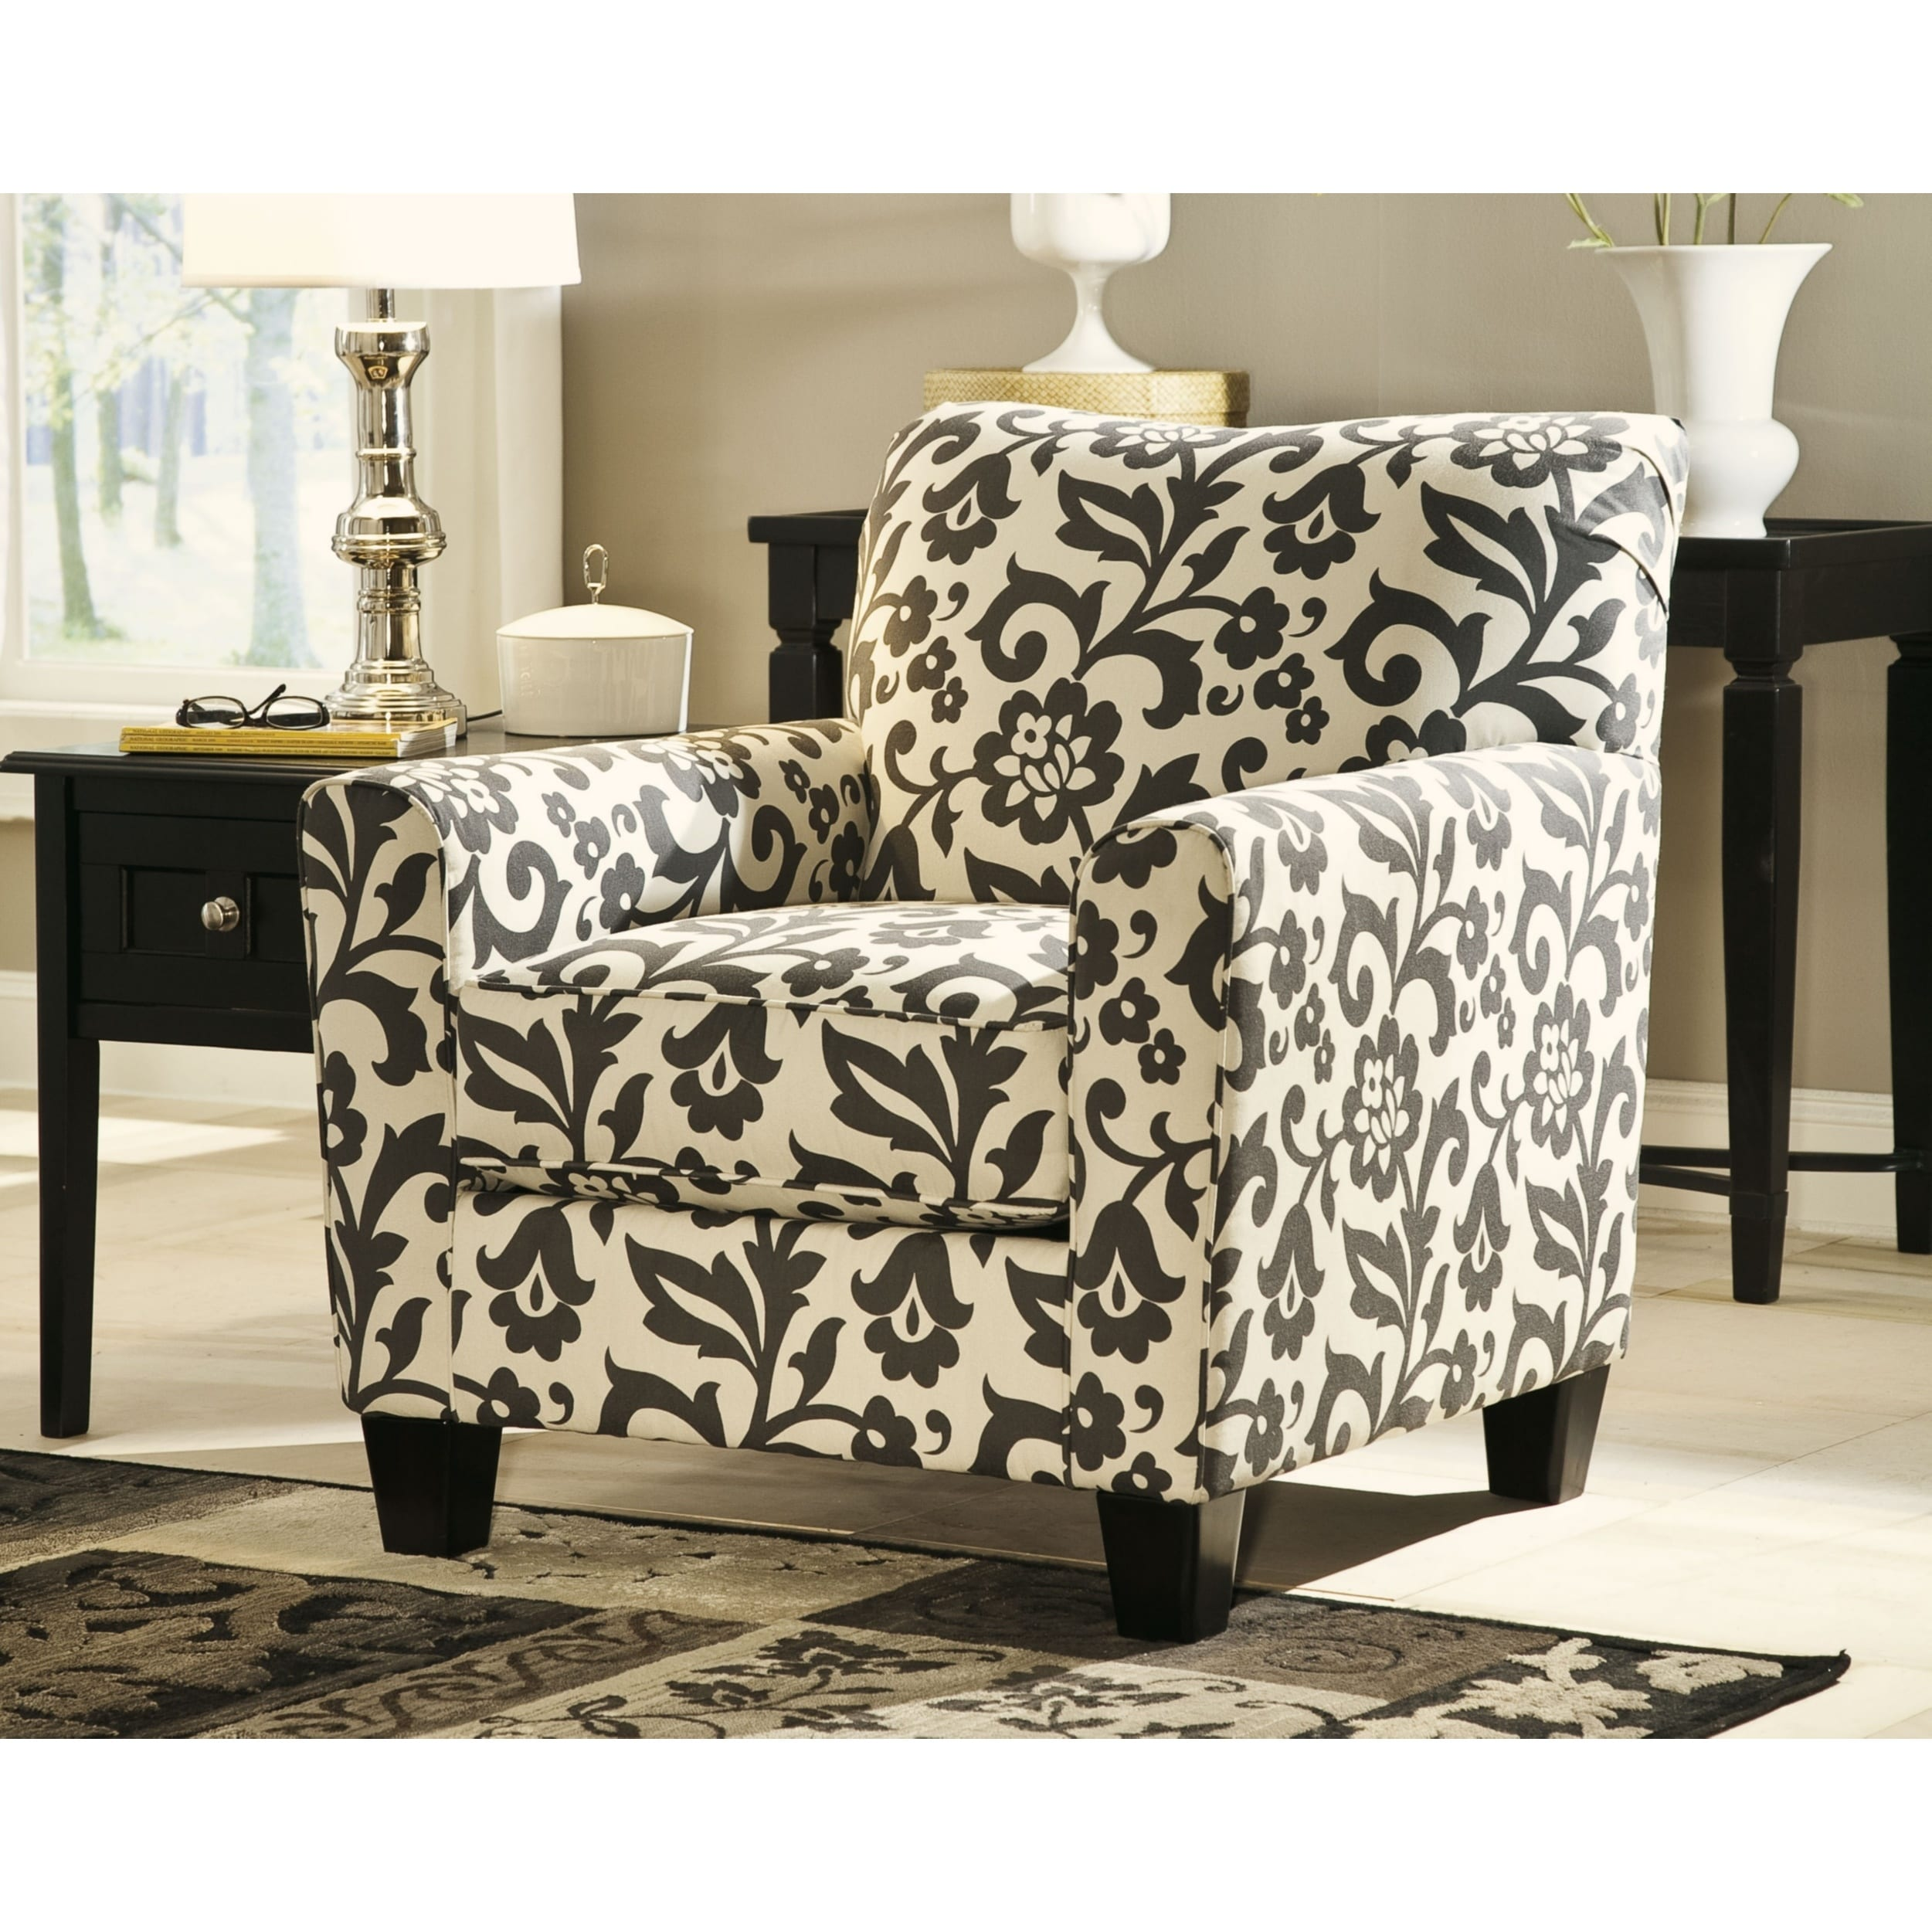 Enjoyable Levon Charcoal Floral Print Accent Chair Download Free Architecture Designs Scobabritishbridgeorg